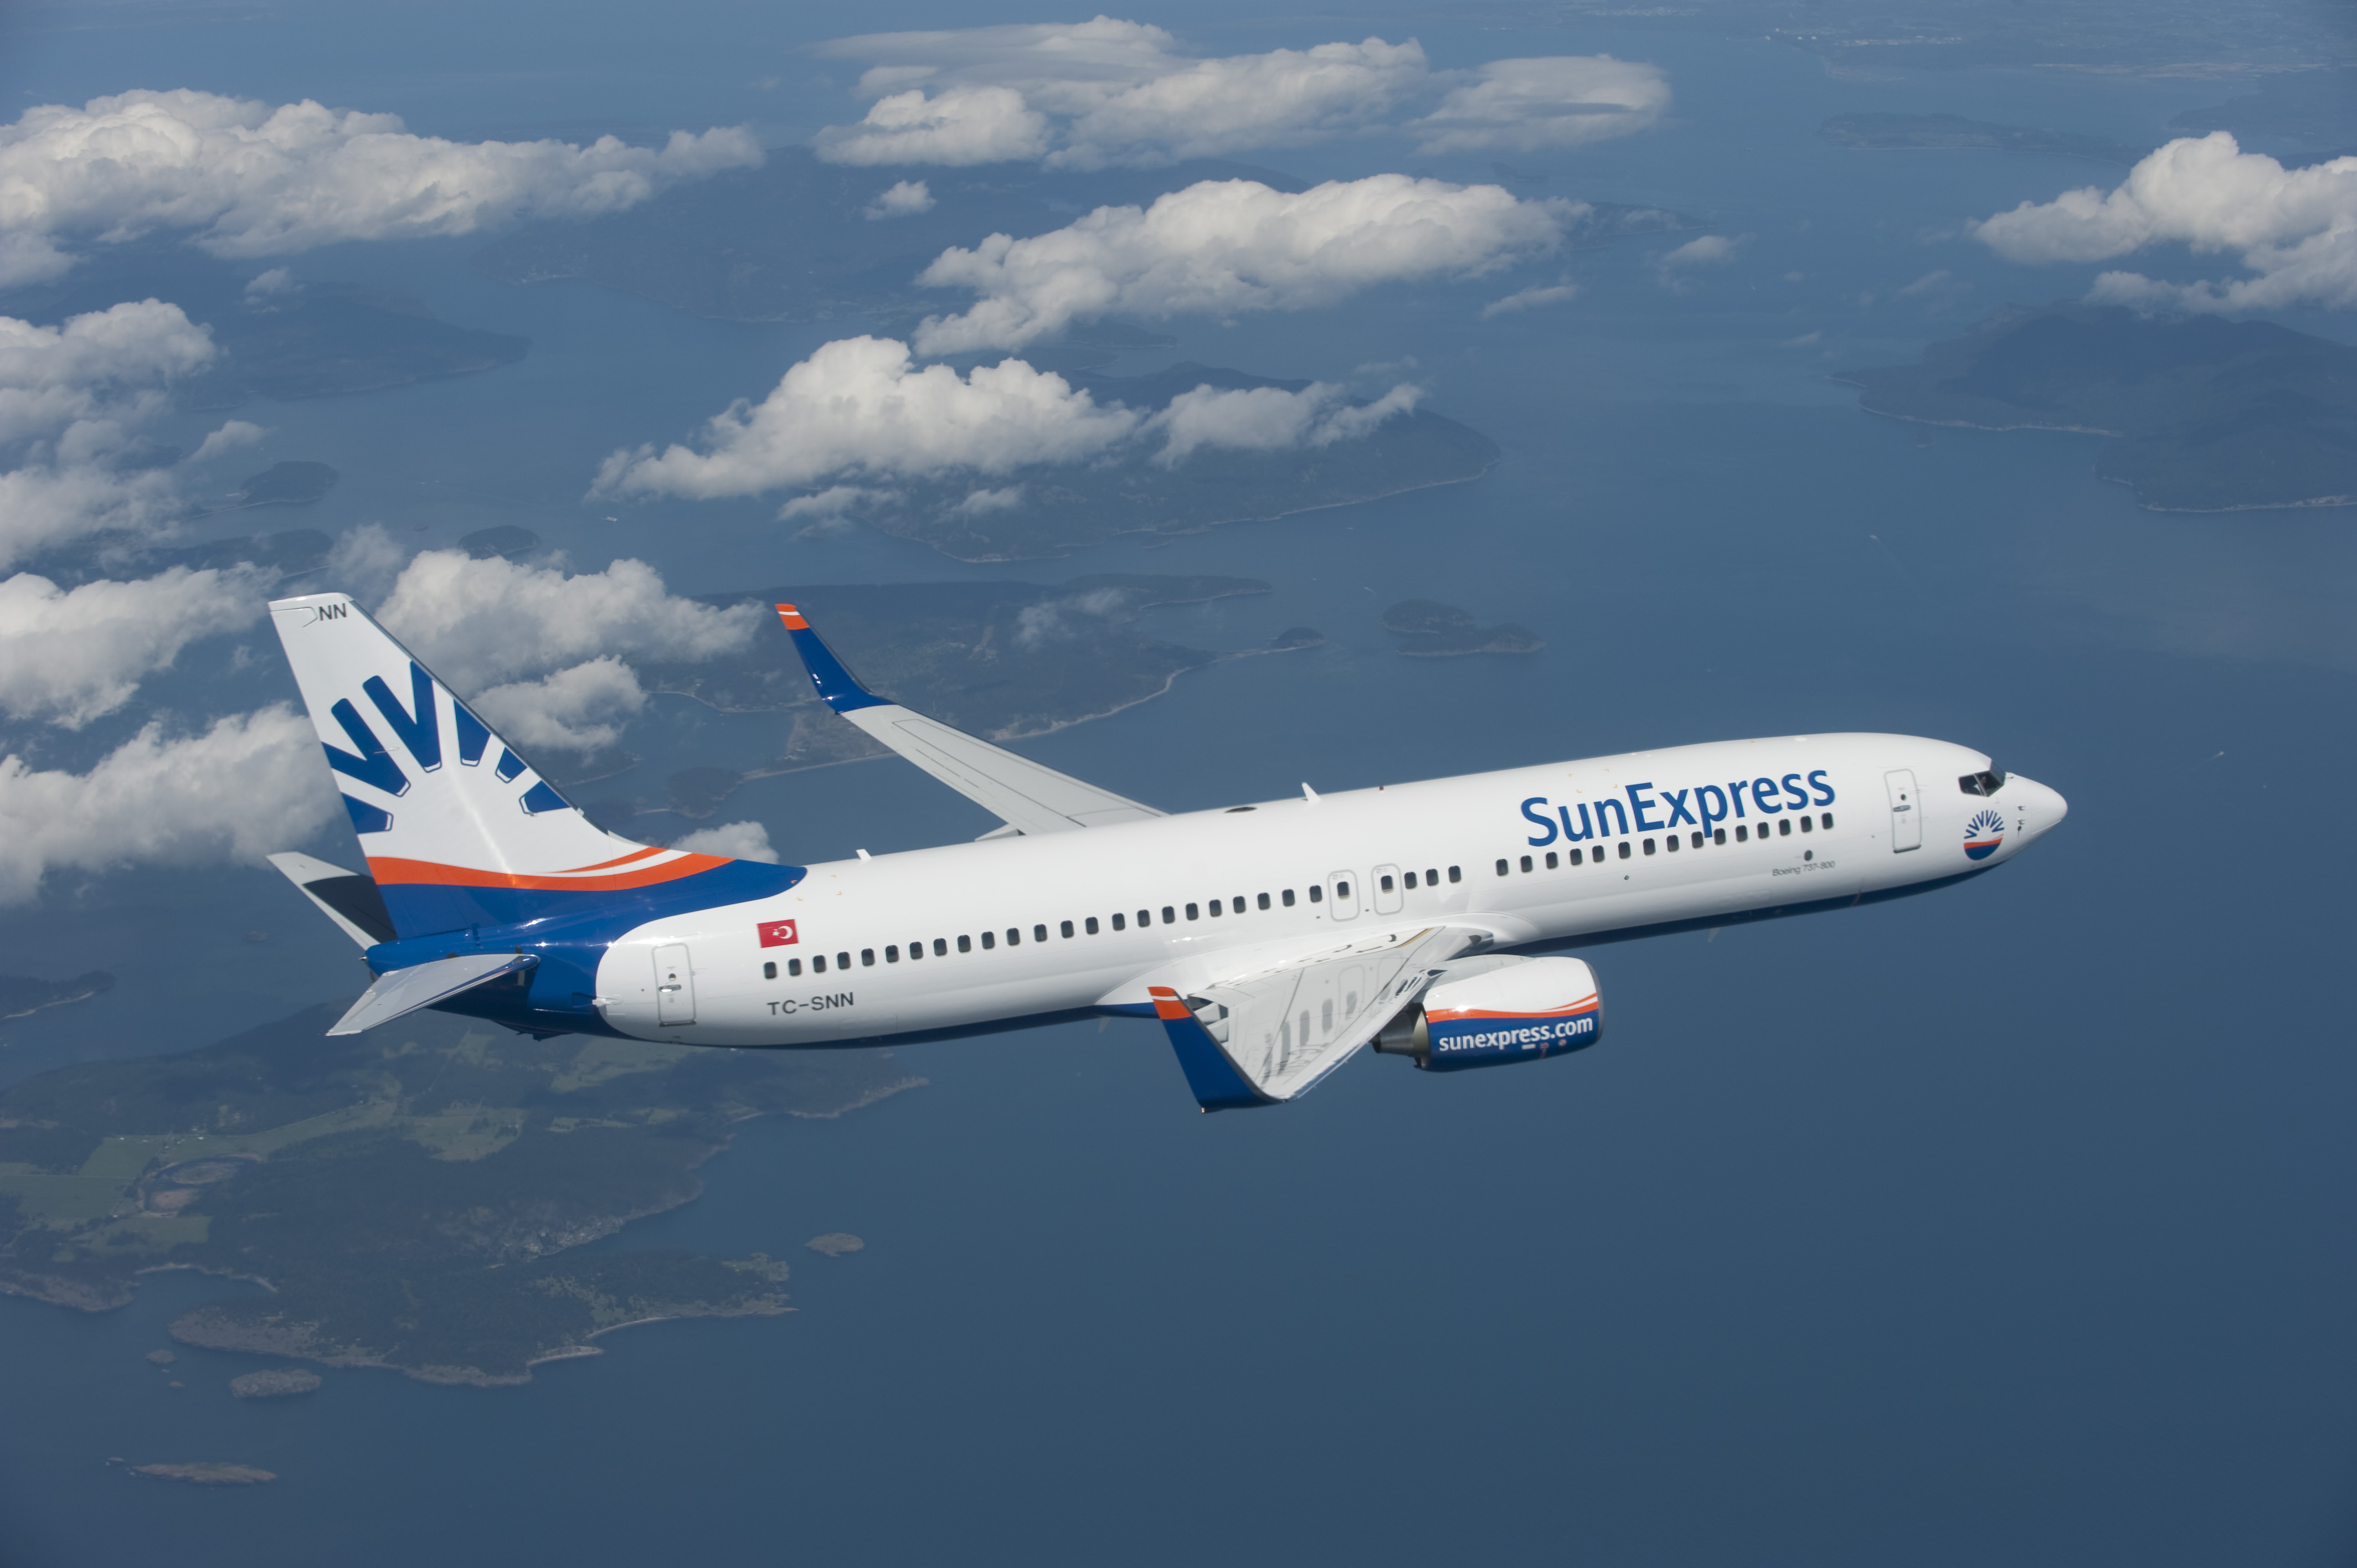 SunExpress Flights to the Middle East to Begin